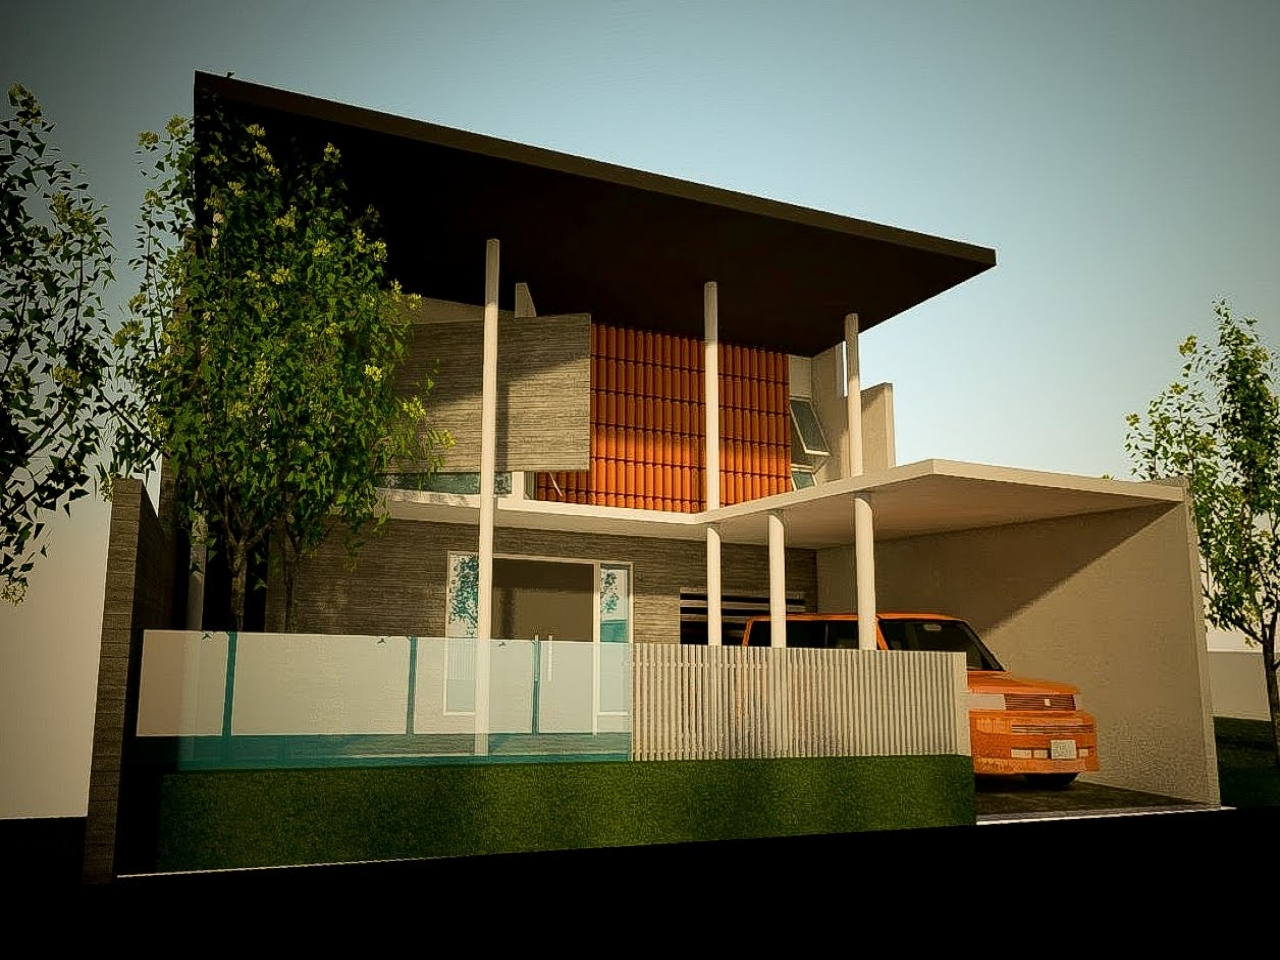 Modern minimalist house design modern minimalist house for Minimalist home design